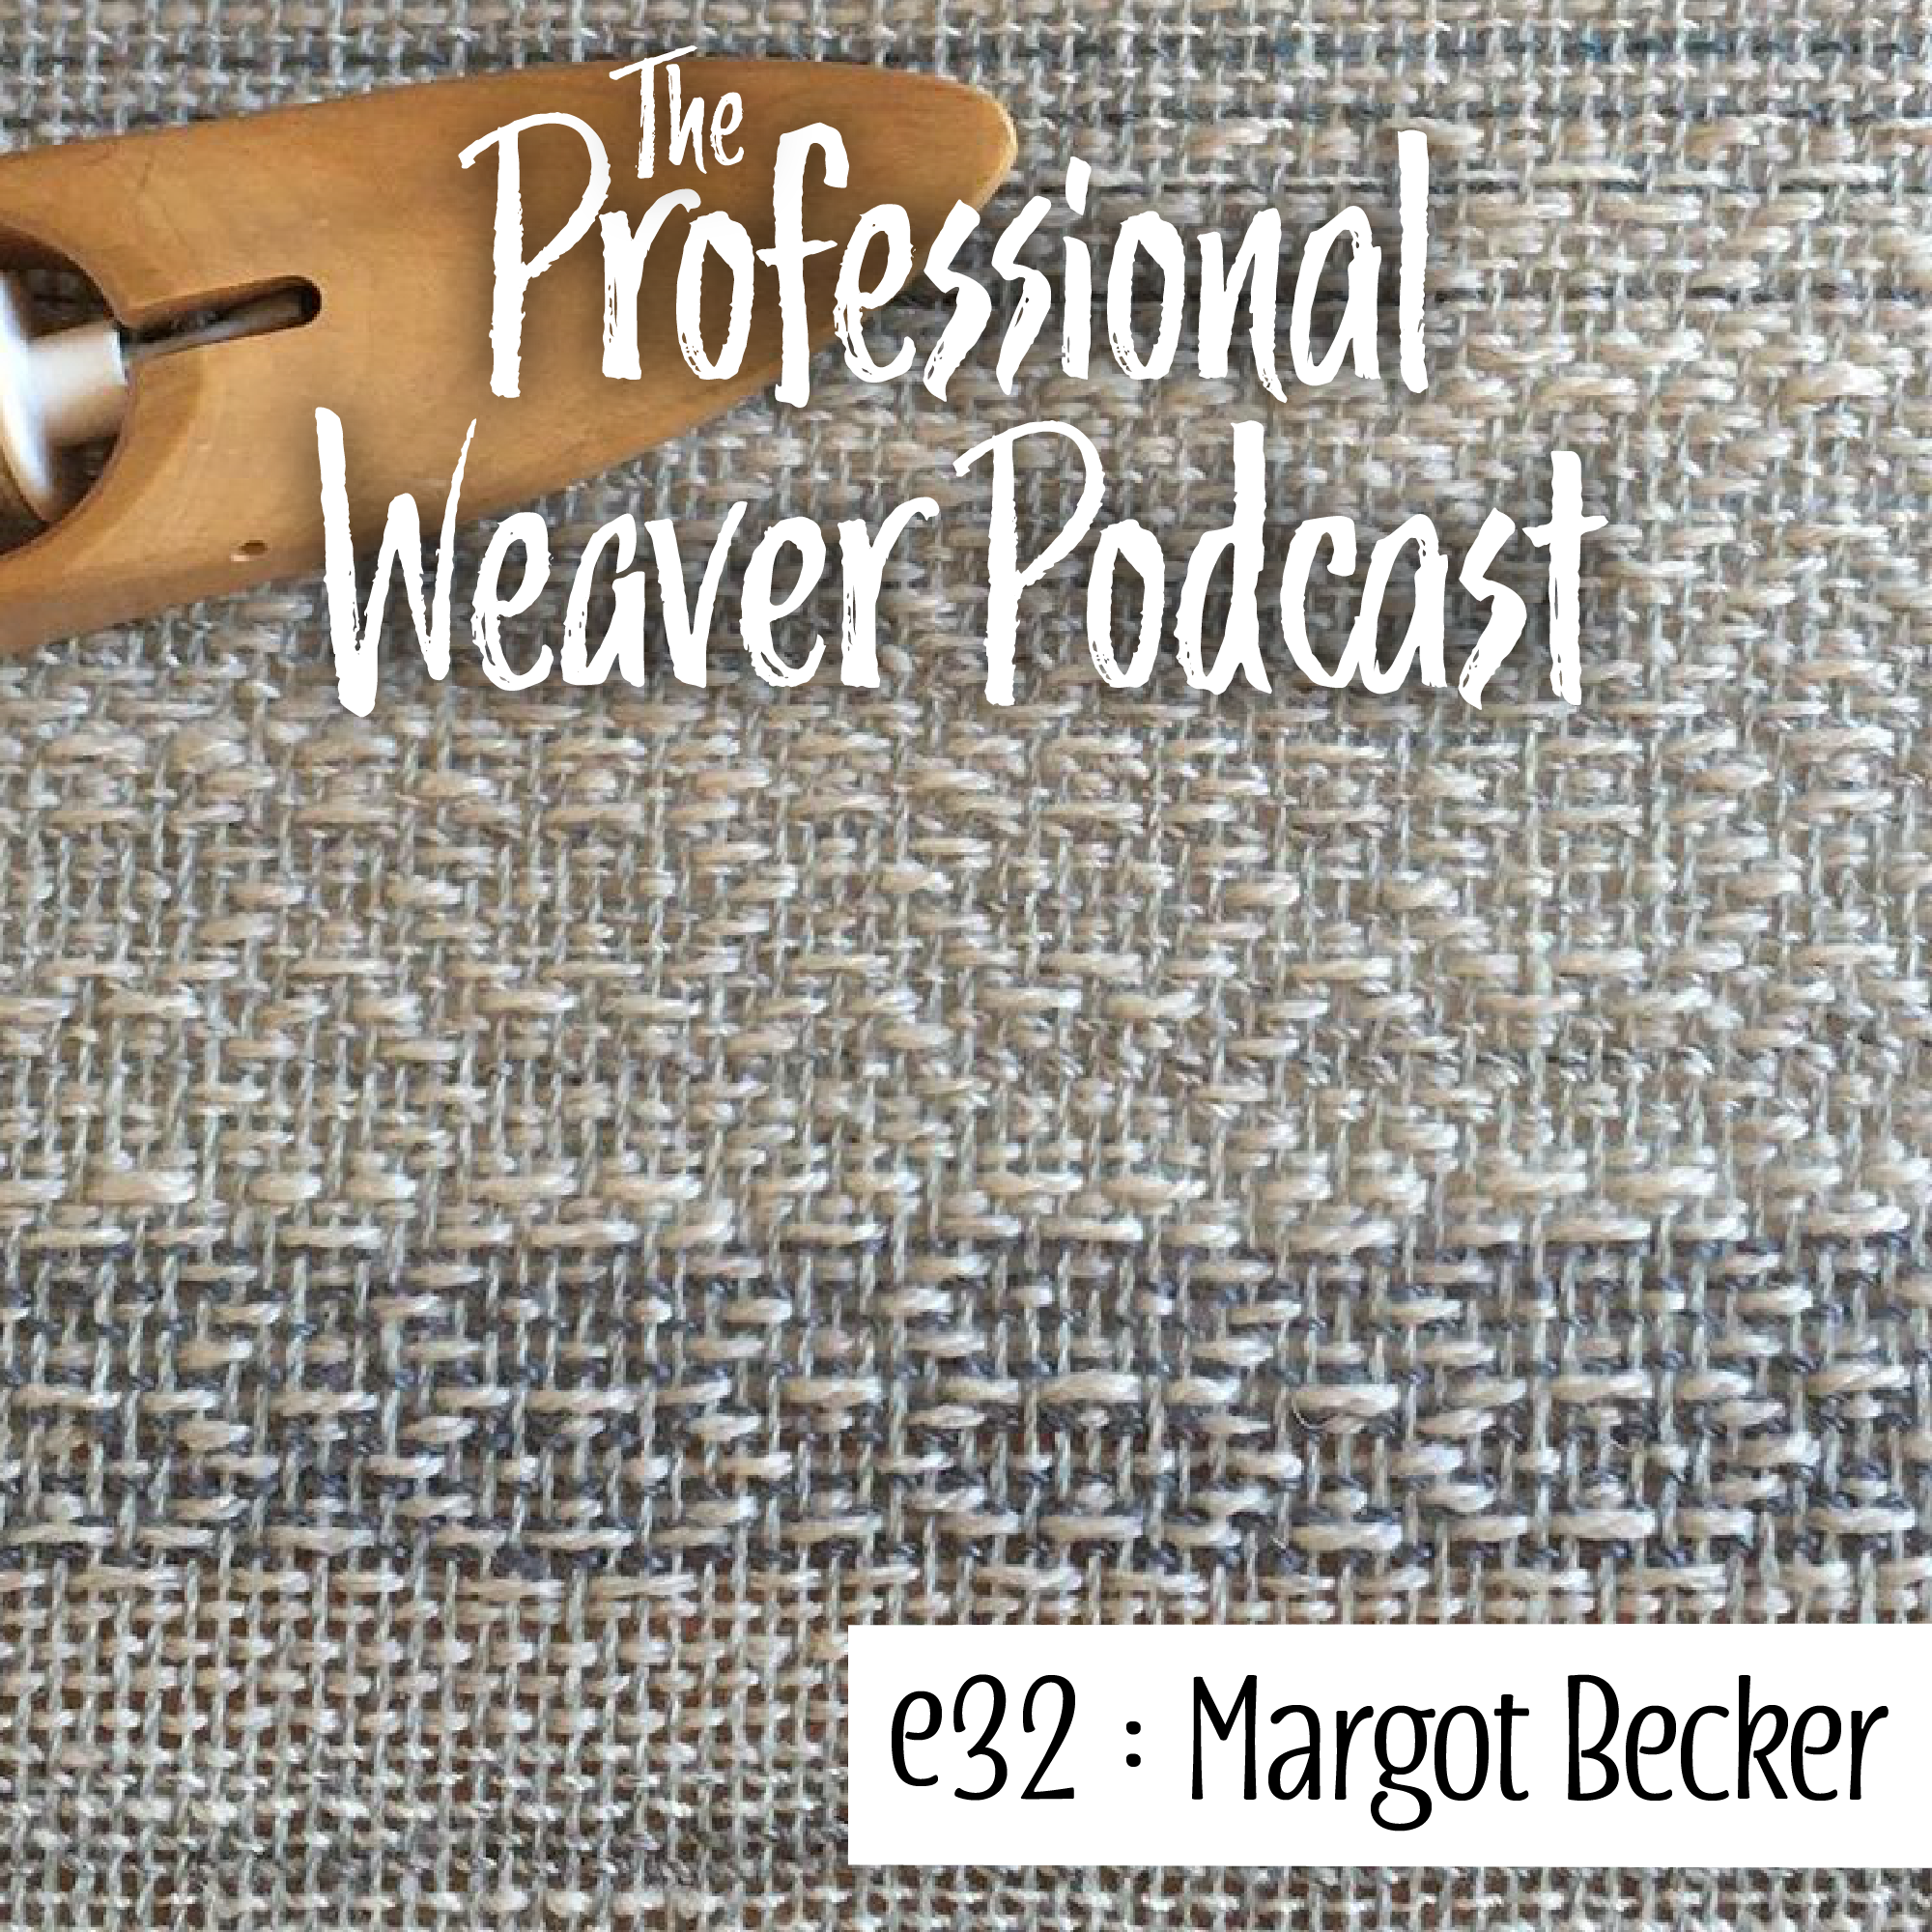 S2E2 : Margot Becker on weaving as an artist and craftsperson, creating with a transparent supply chain, and pricing